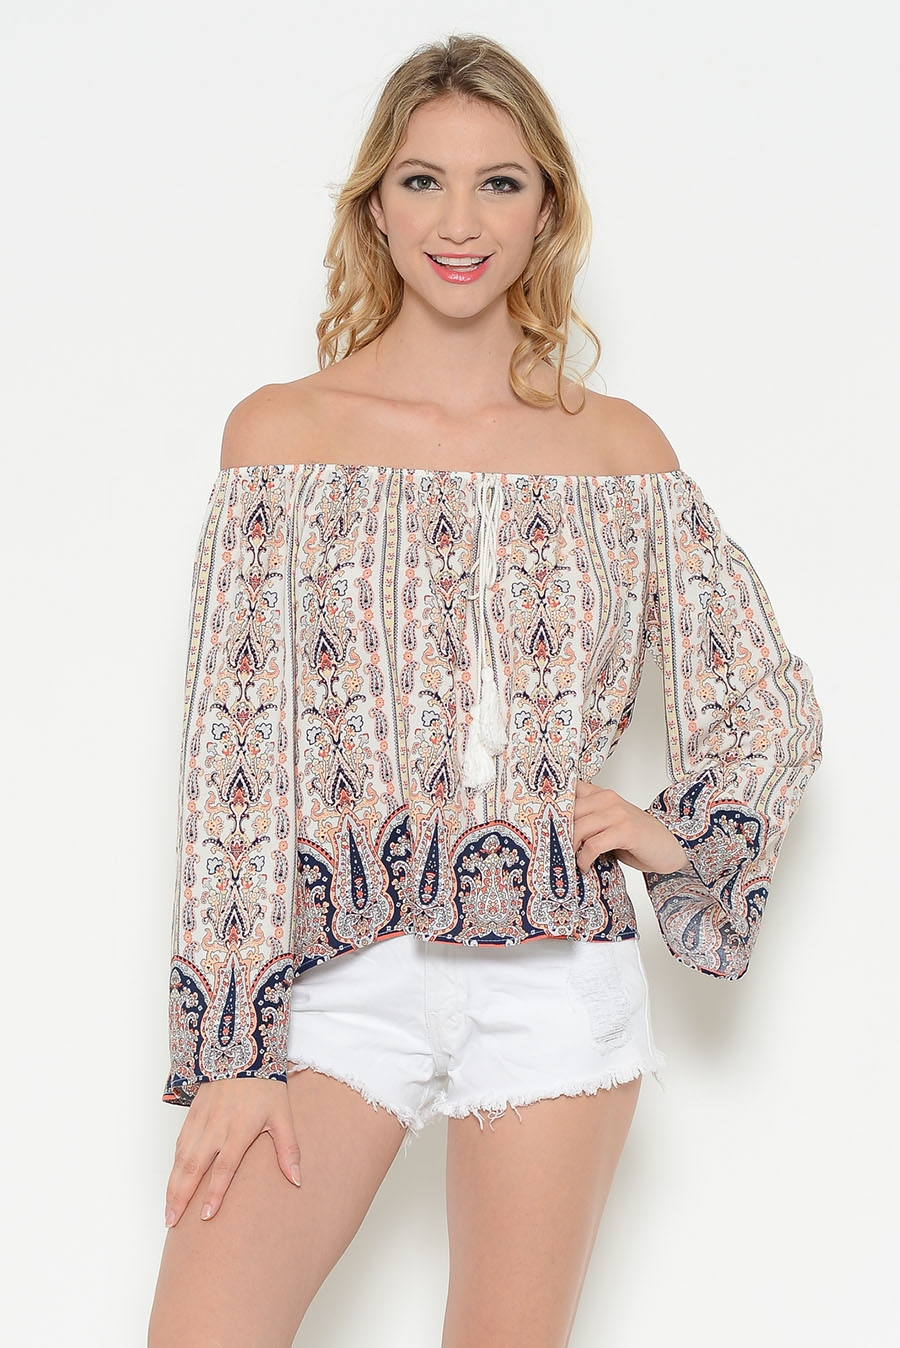 OFF SHOULDER PRINT TOP - orangeshine.com